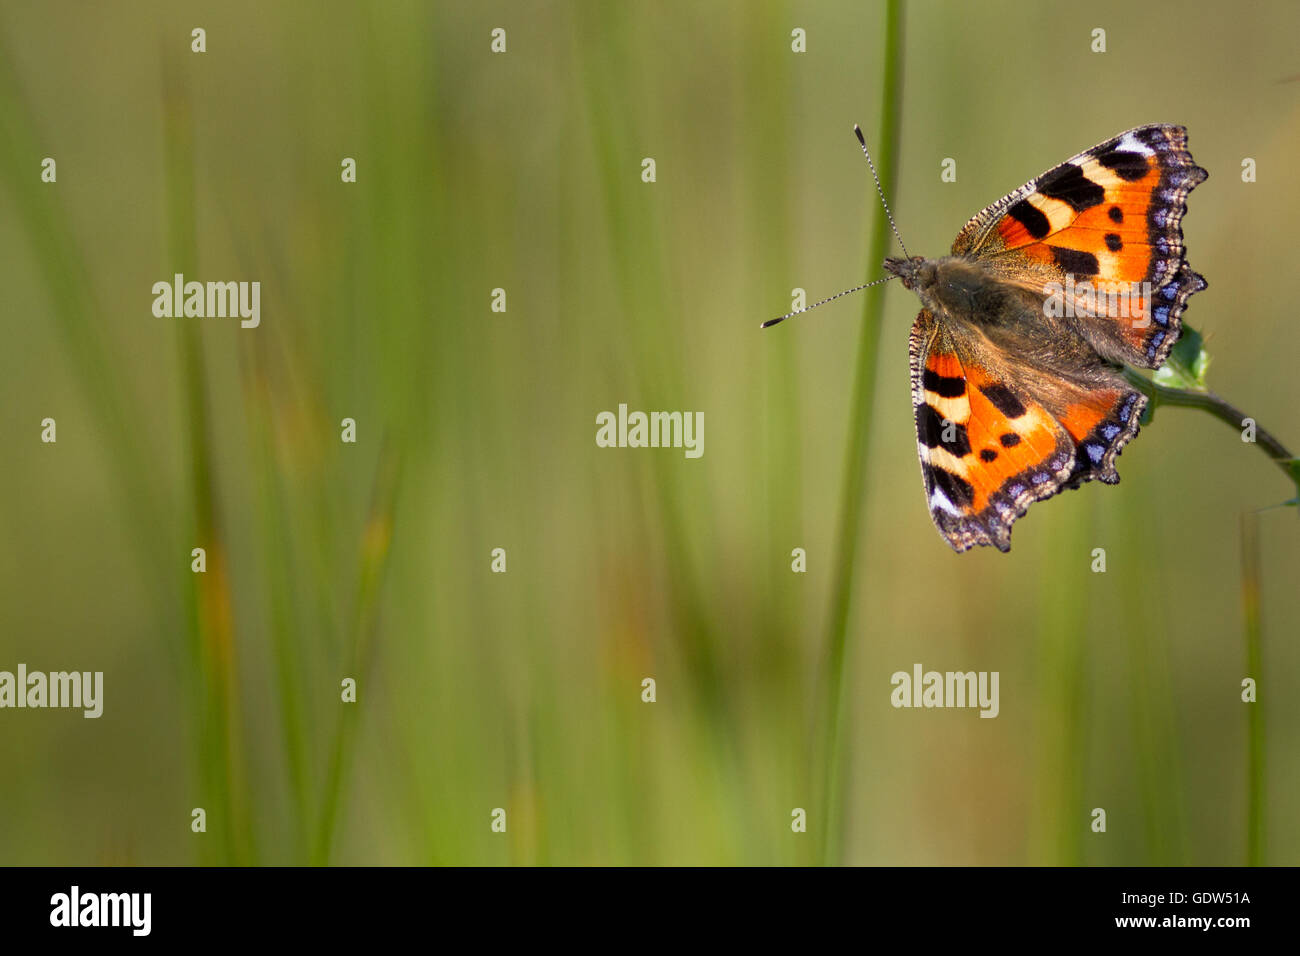 Small tortoiseshell butterfly, West Yorkshire, UK - Stock Image